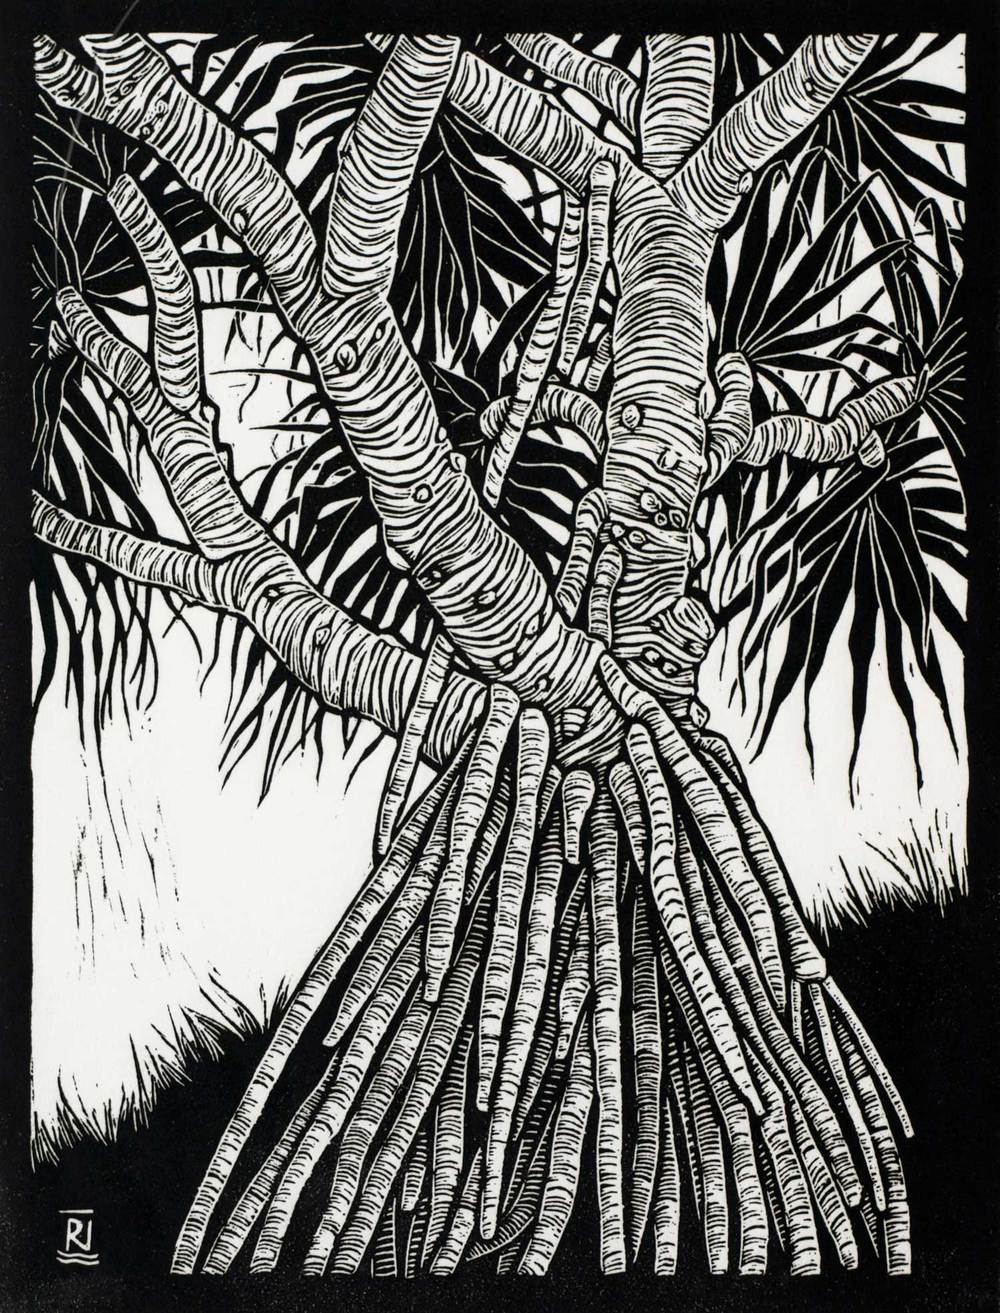 PANDANUS  29.5 X 22.5 CM EDITION OF 50  LINOCUT ON HANDMADE JAPANESE PAPER  $500